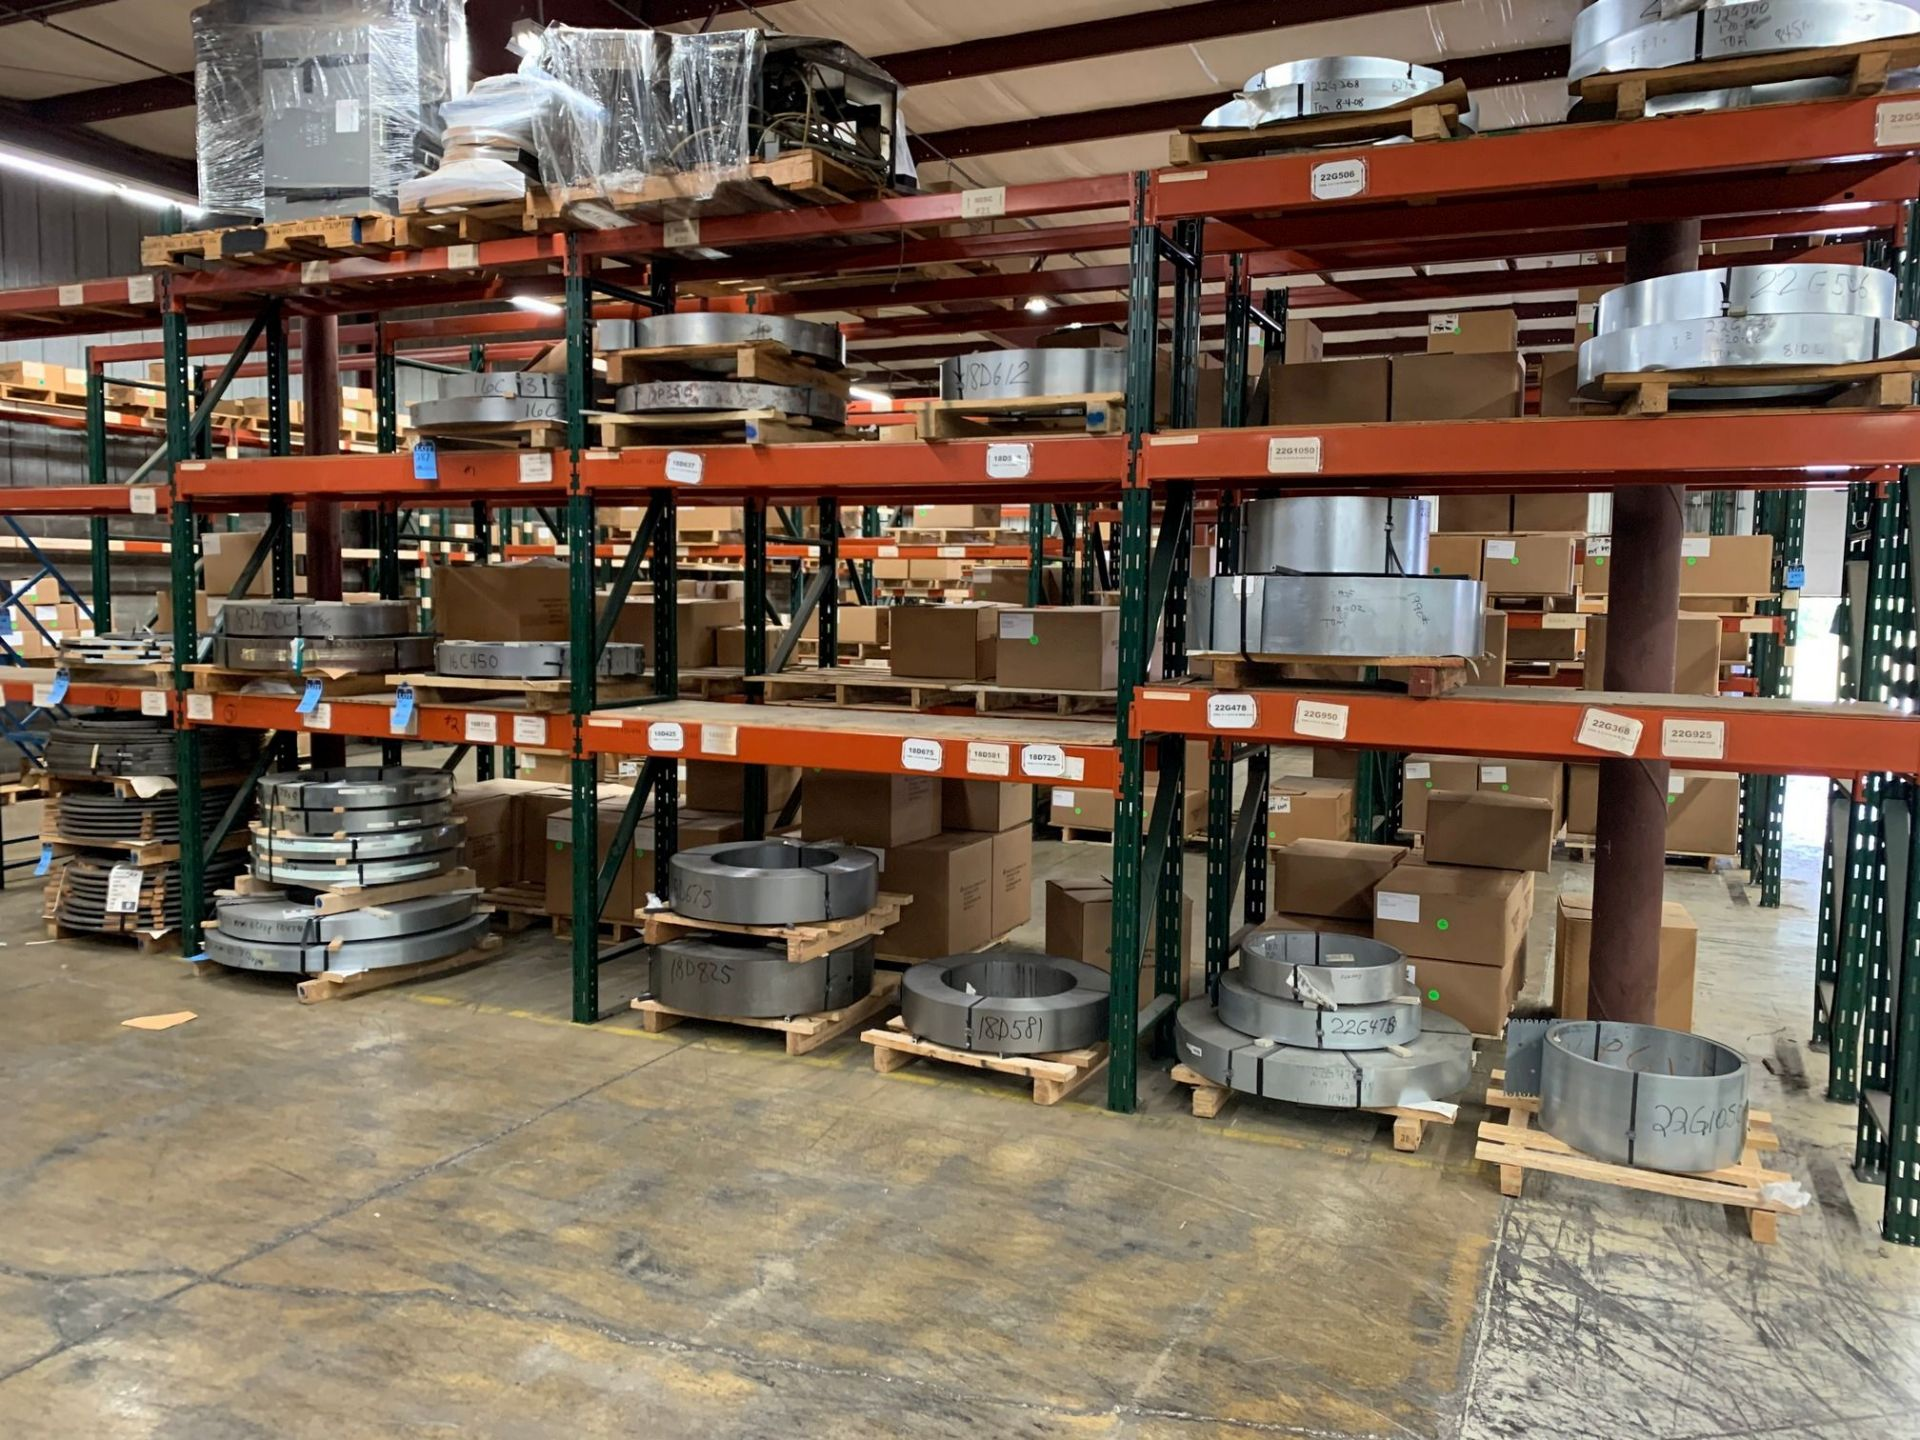 SKIDS OF MISCELLANEOUS STEEL COIL STOCK - Image 2 of 2